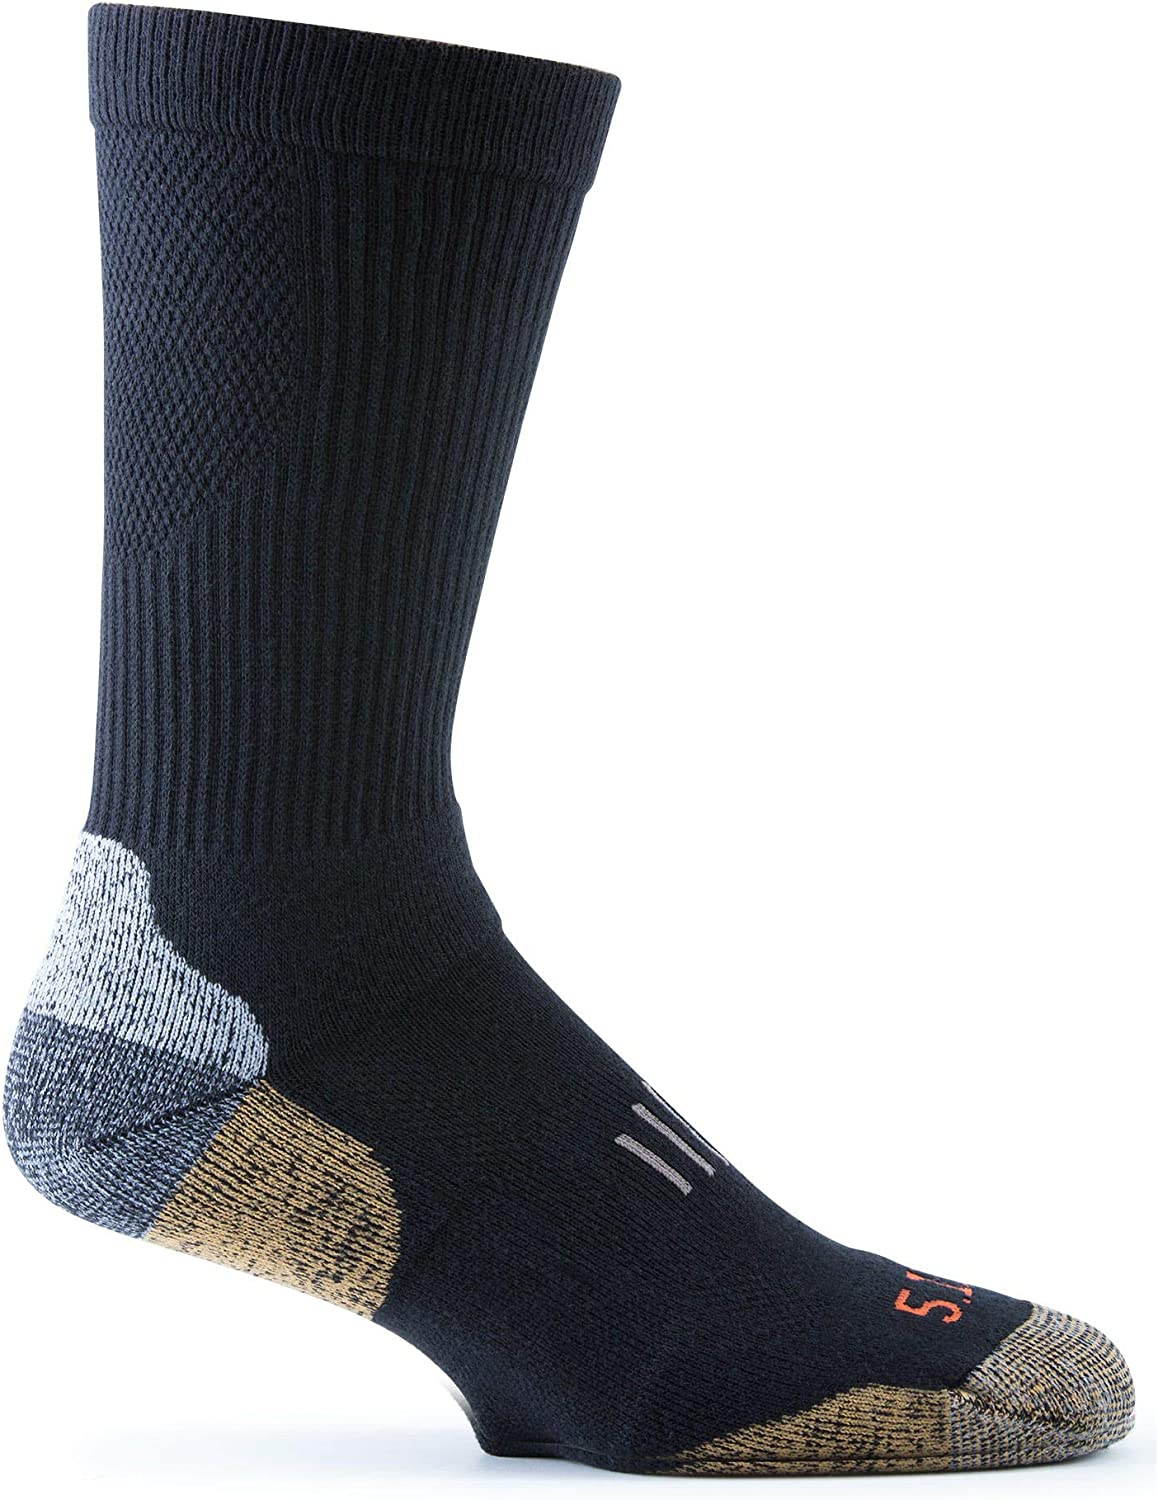 5.11 Tactical Crew Year Round Chaussettes Noir FR